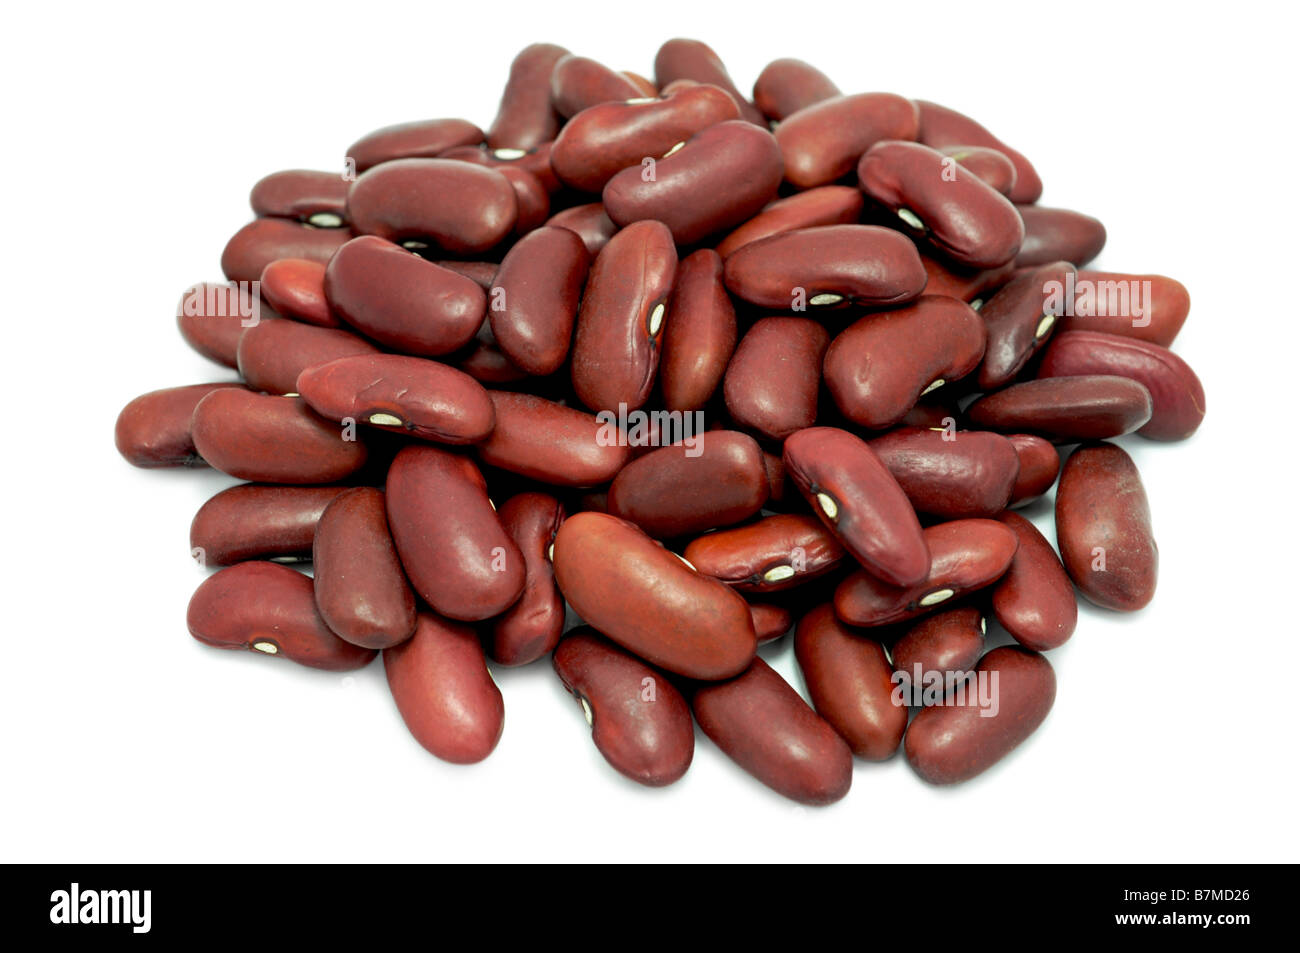 Red Kidney Beans, Dried Stock Photo